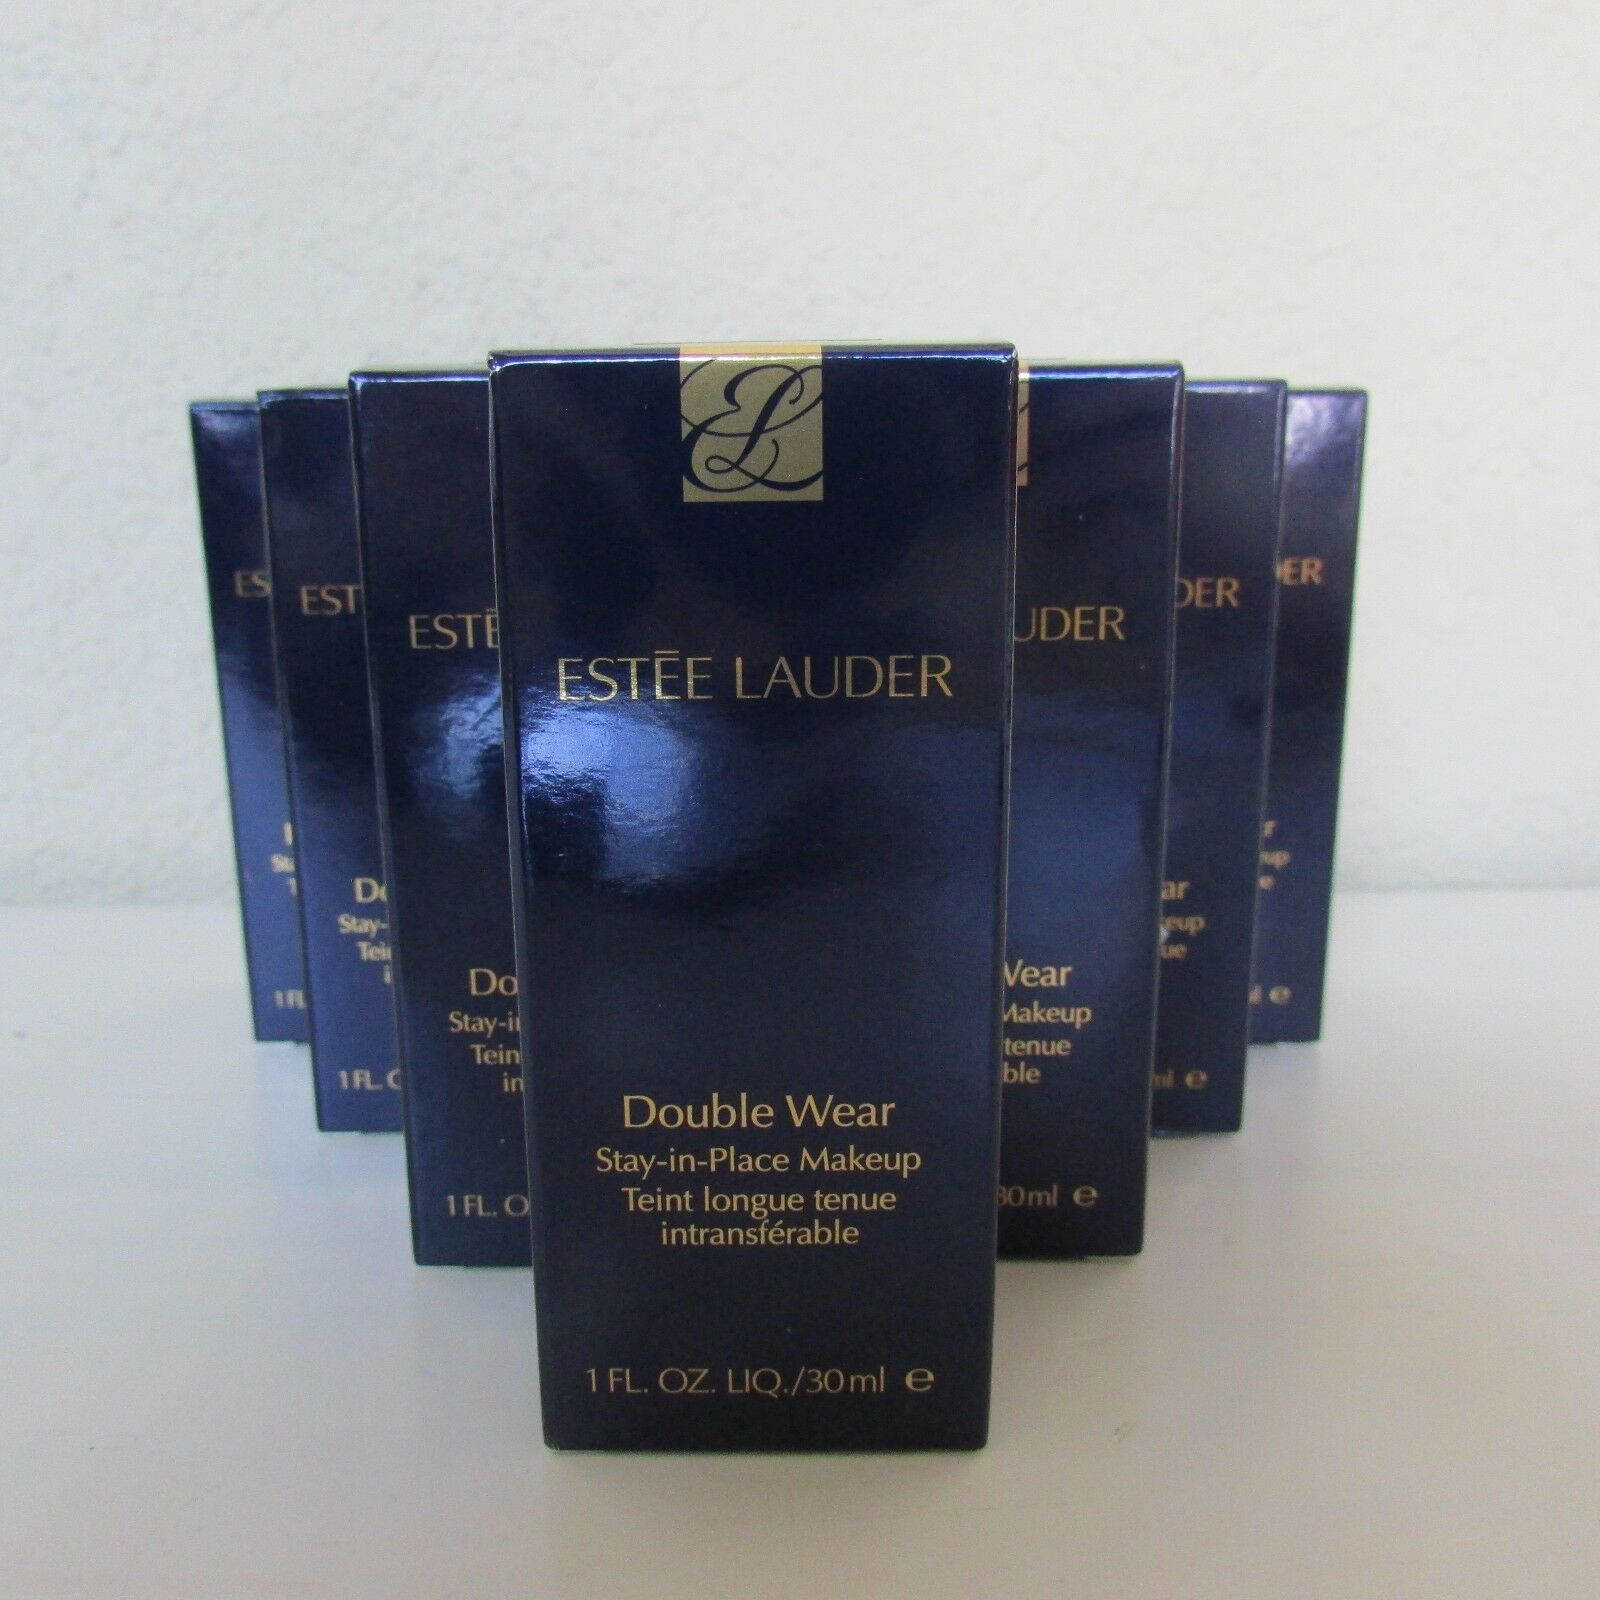 estee lauder double wear stay-... Image 1